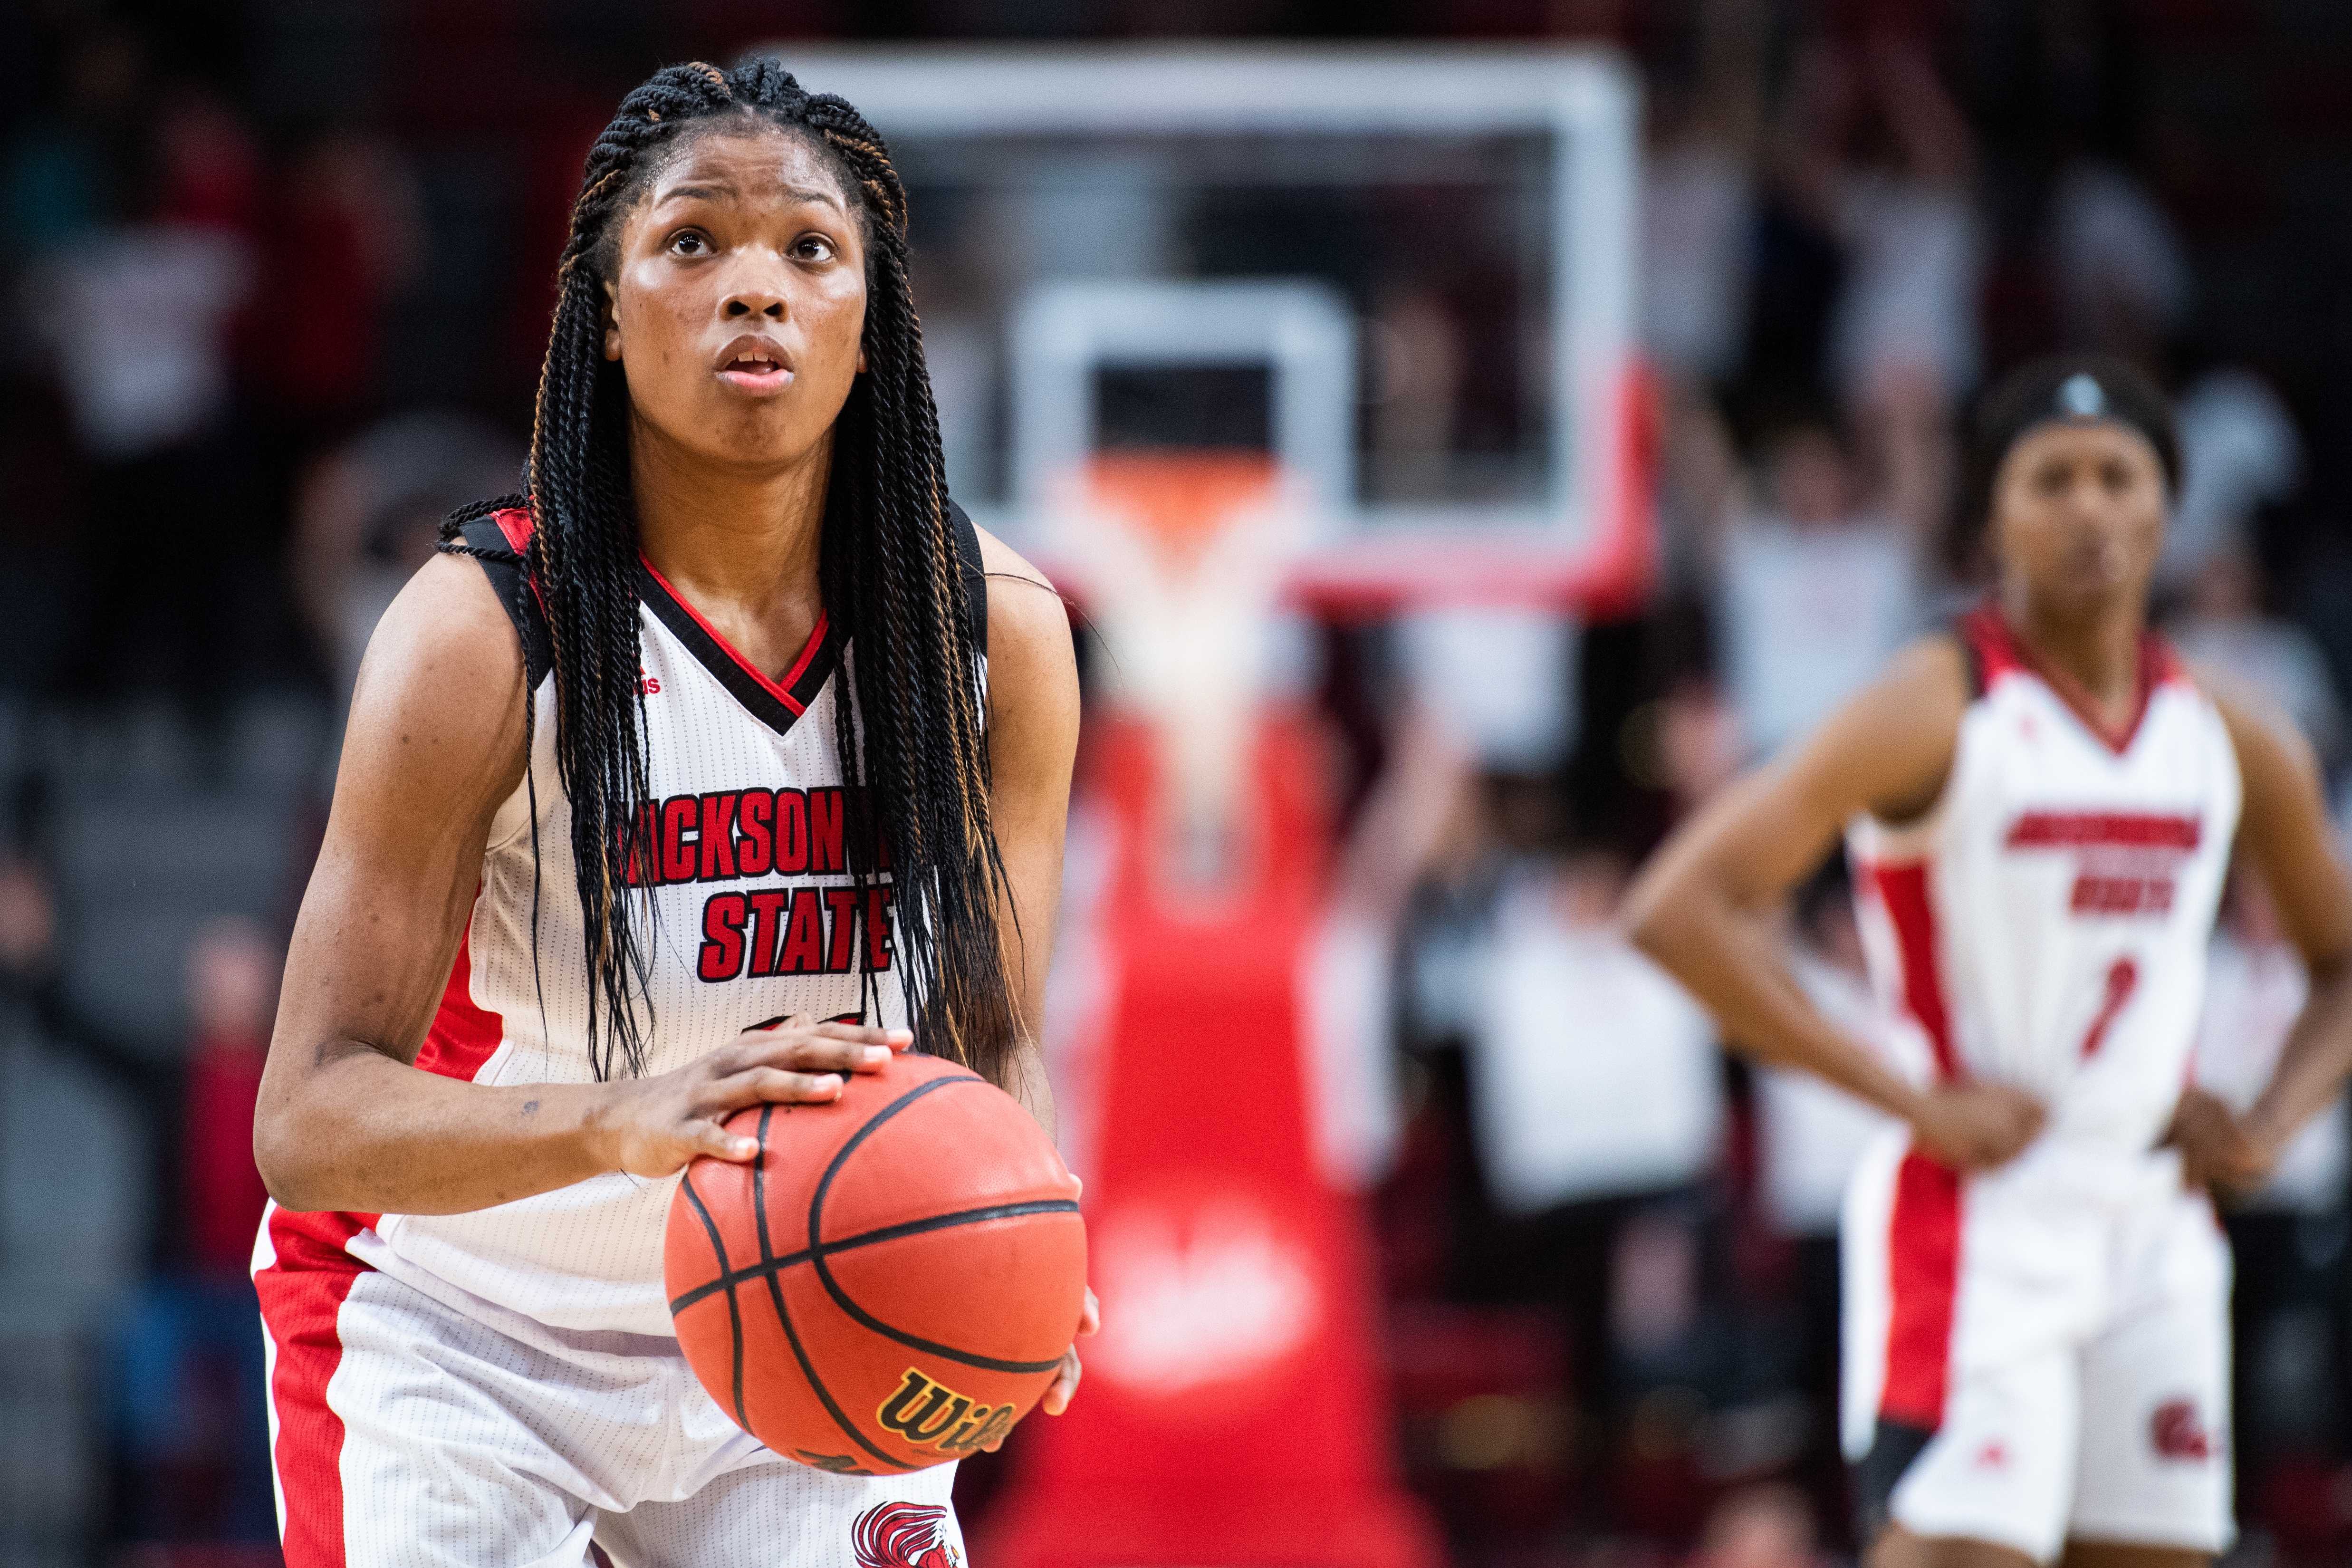 Junior guard Kiana Johnson attempting a free throw in Wednesday's game against Berry College. (Courtesy of JSU)